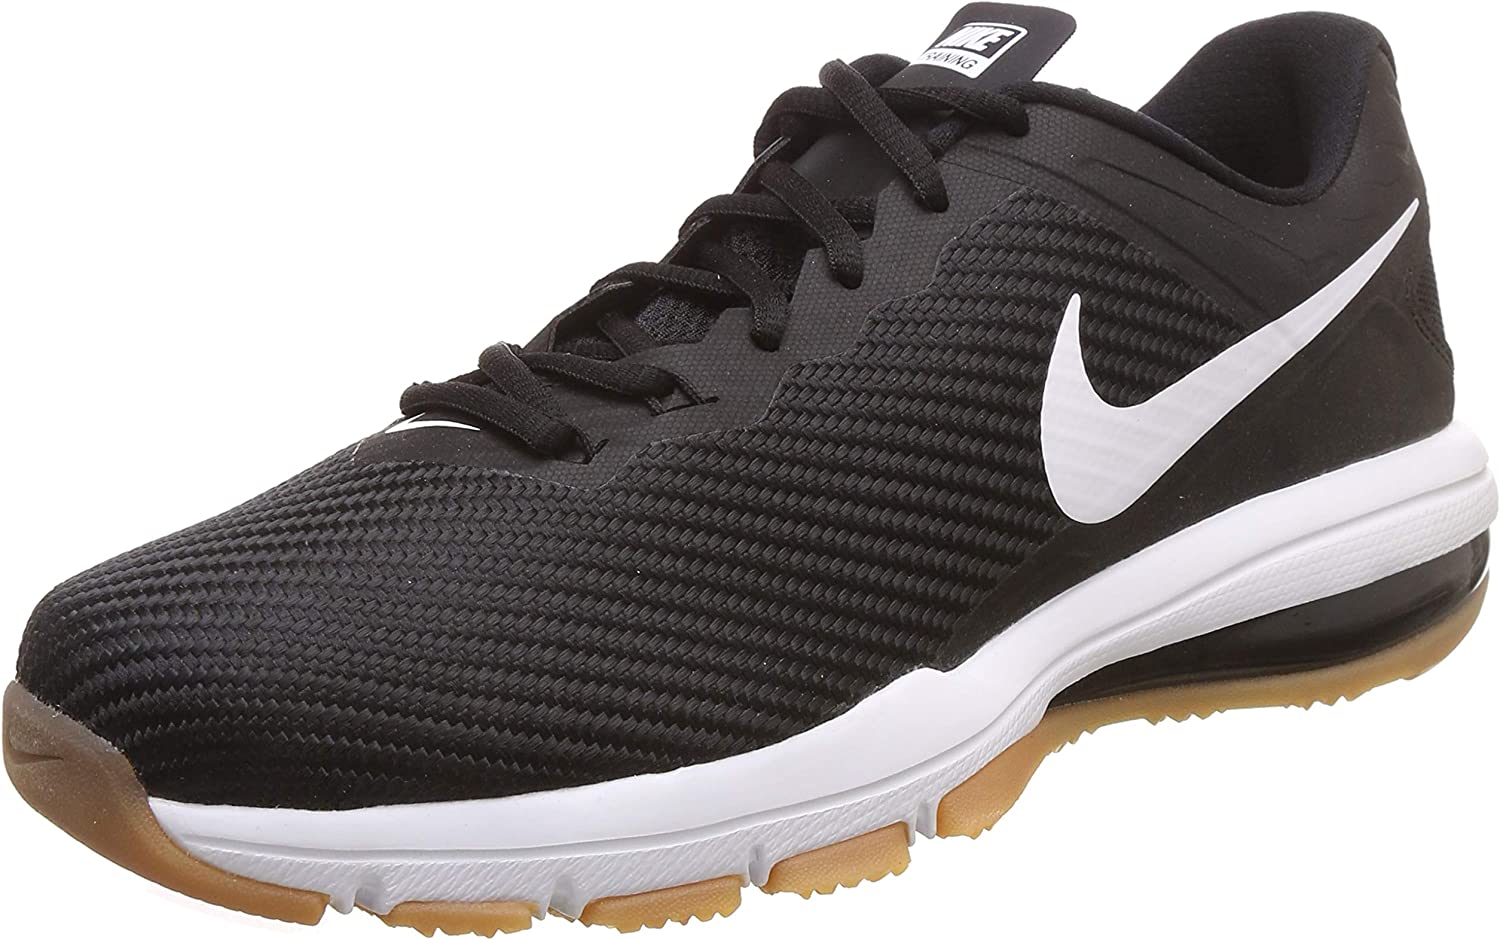 Nike Men's's Trainingsschuh Air Max Full Ride Tr 1.5 Fitness shoes